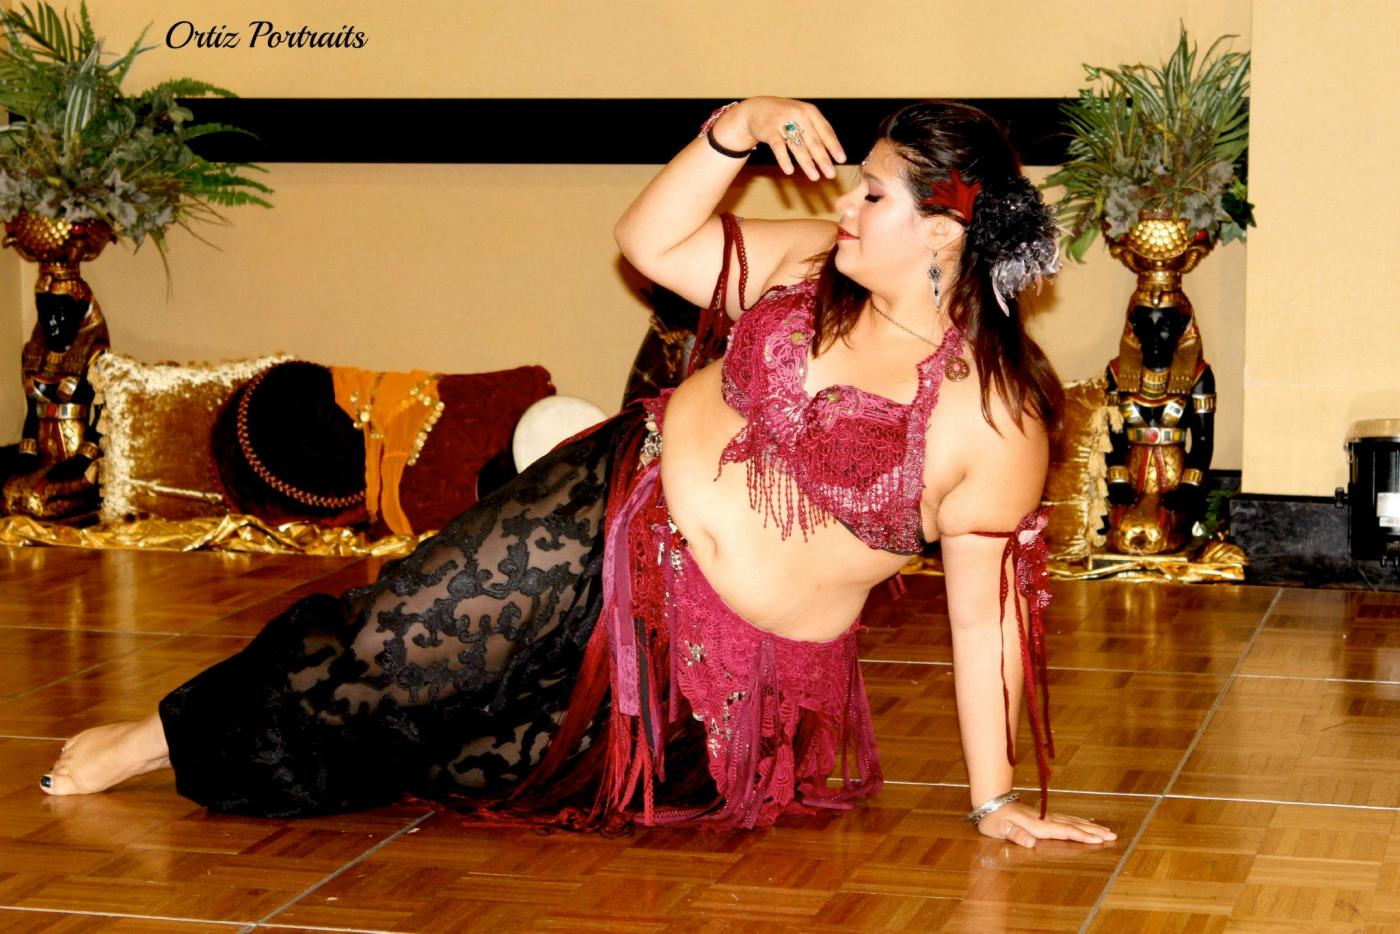 A woman in belly dancer attire strikes a dance pose